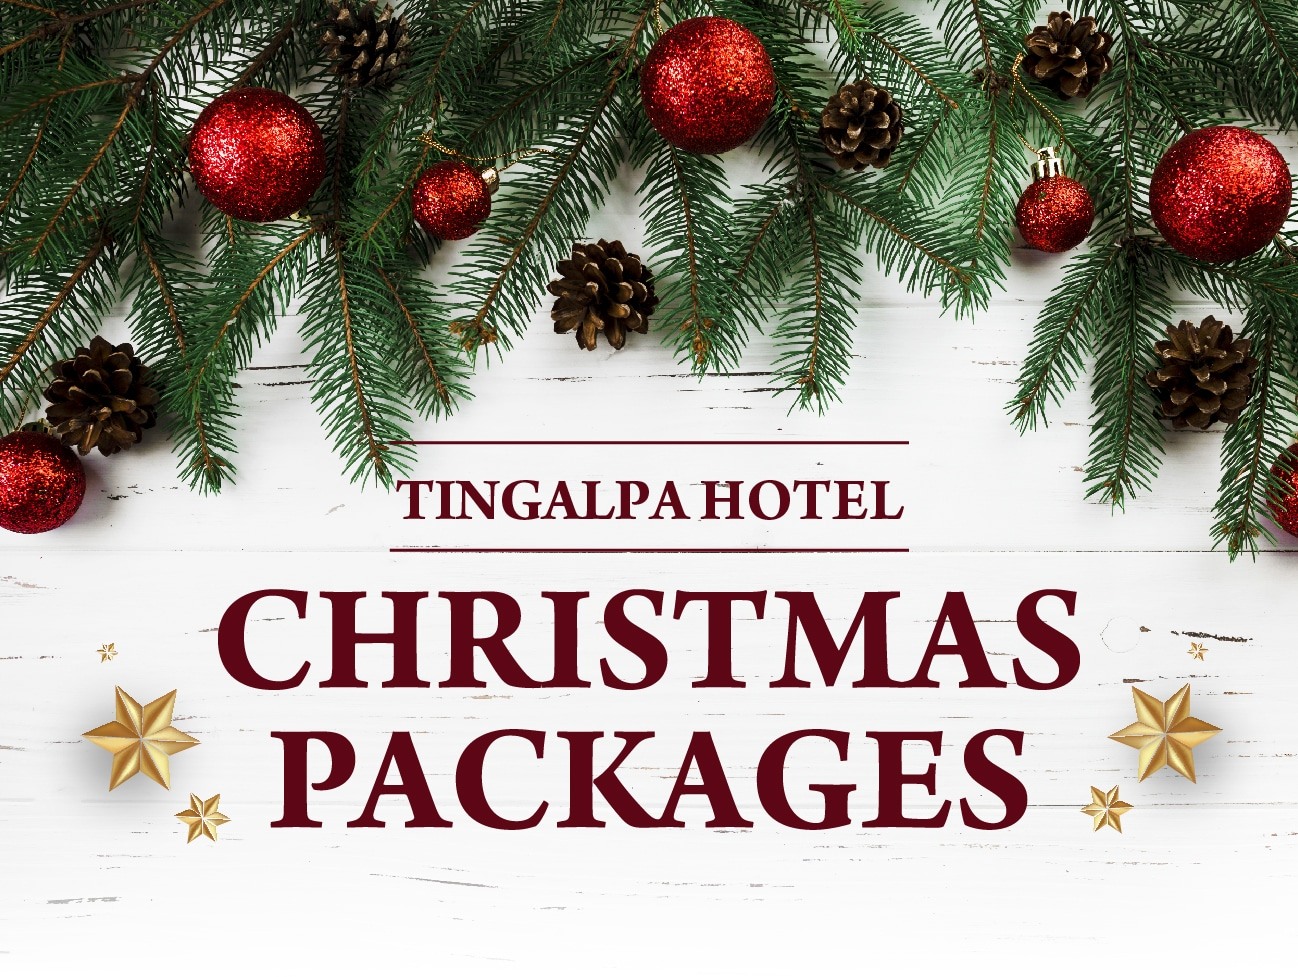 Tingalpa Hotel - Christmas Packages